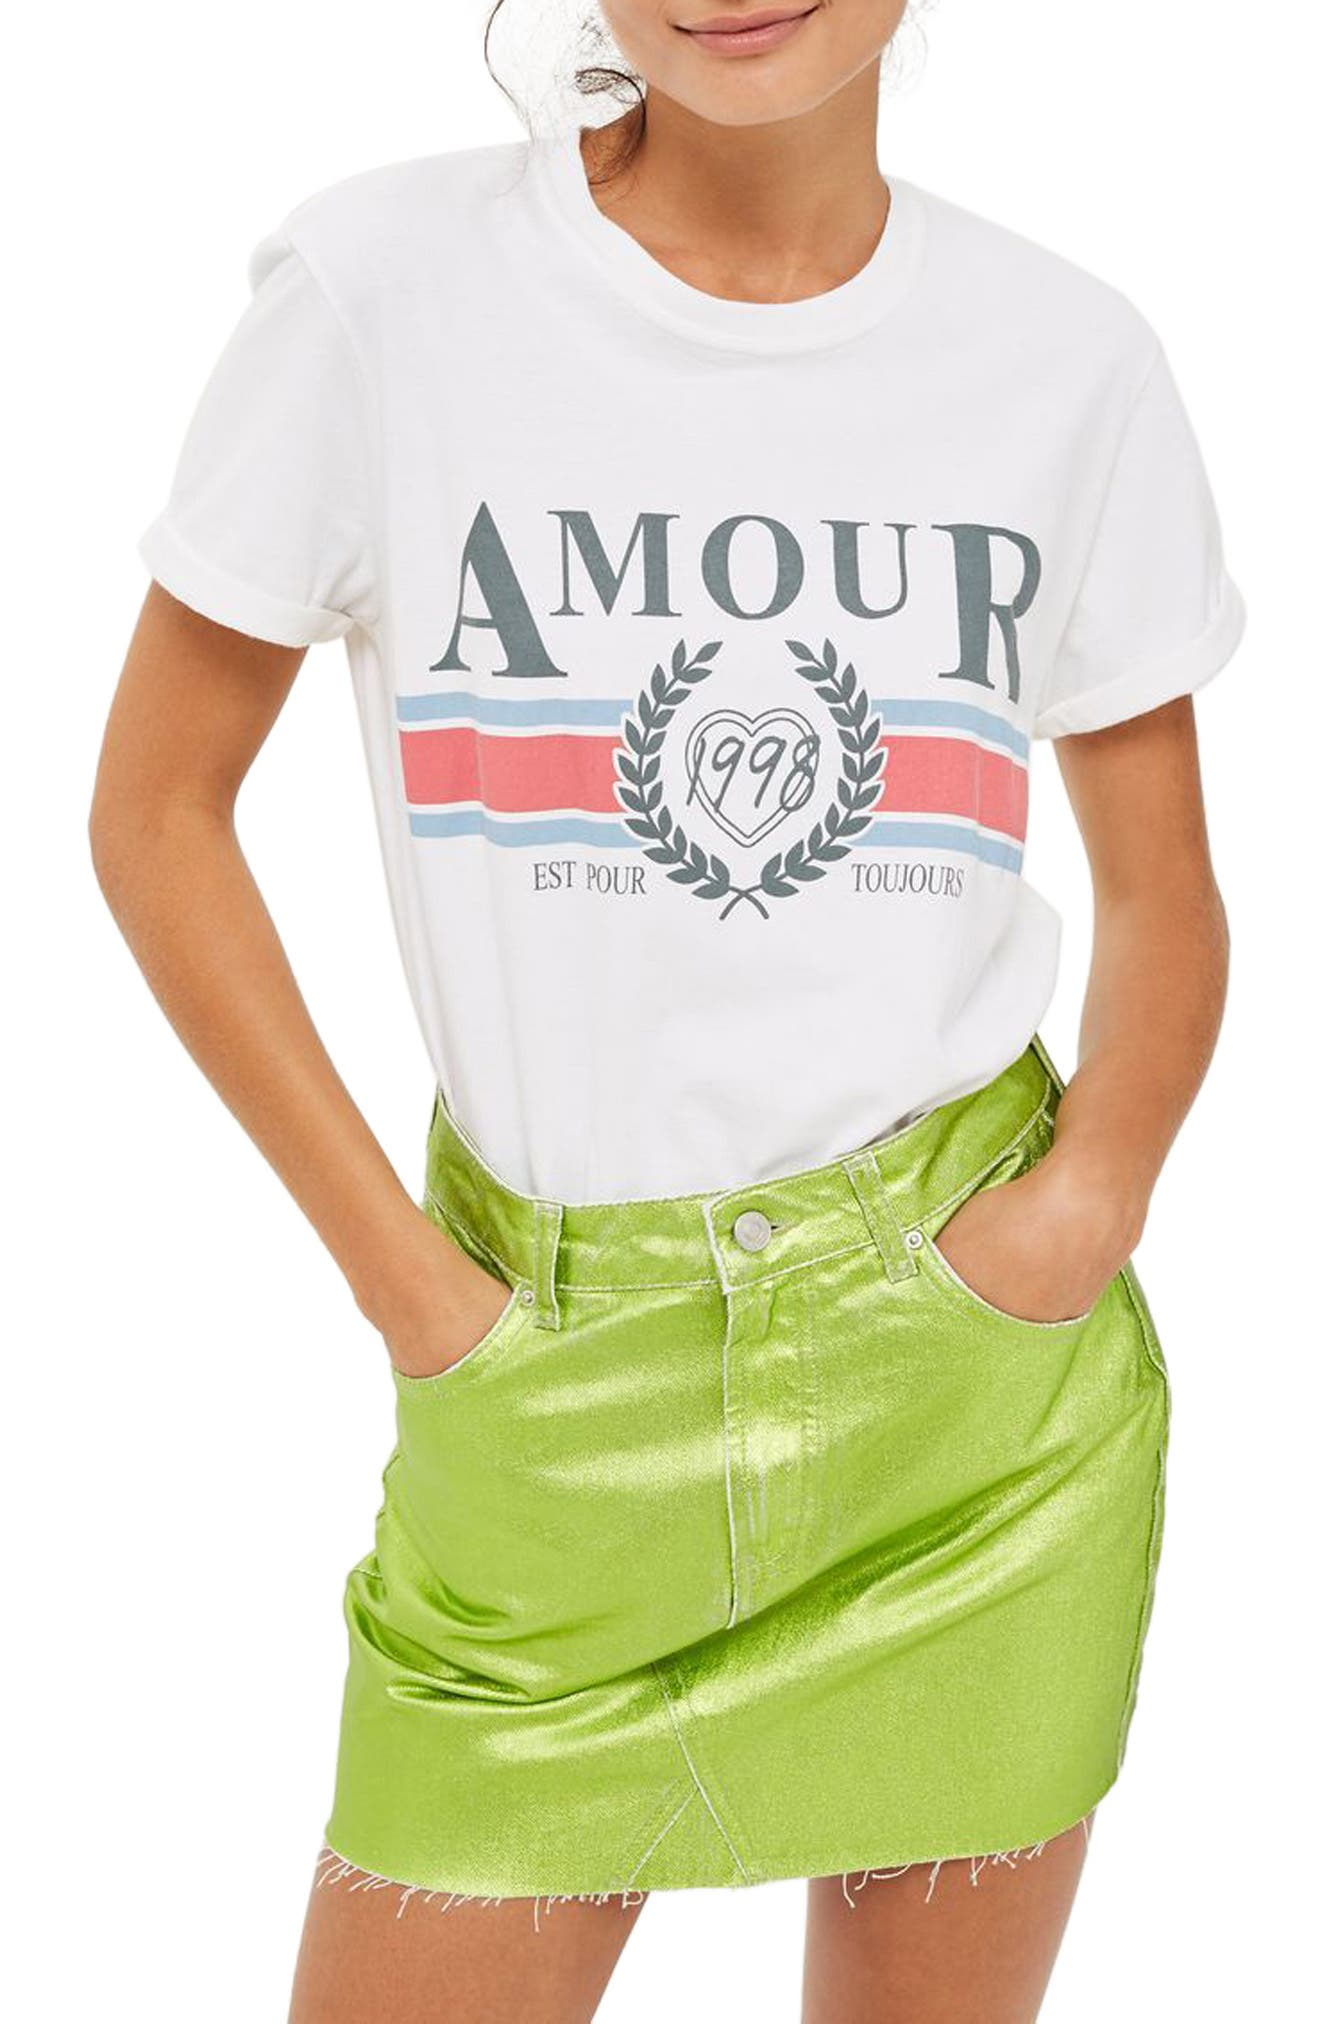 Topshop Amour Tee (Petite)